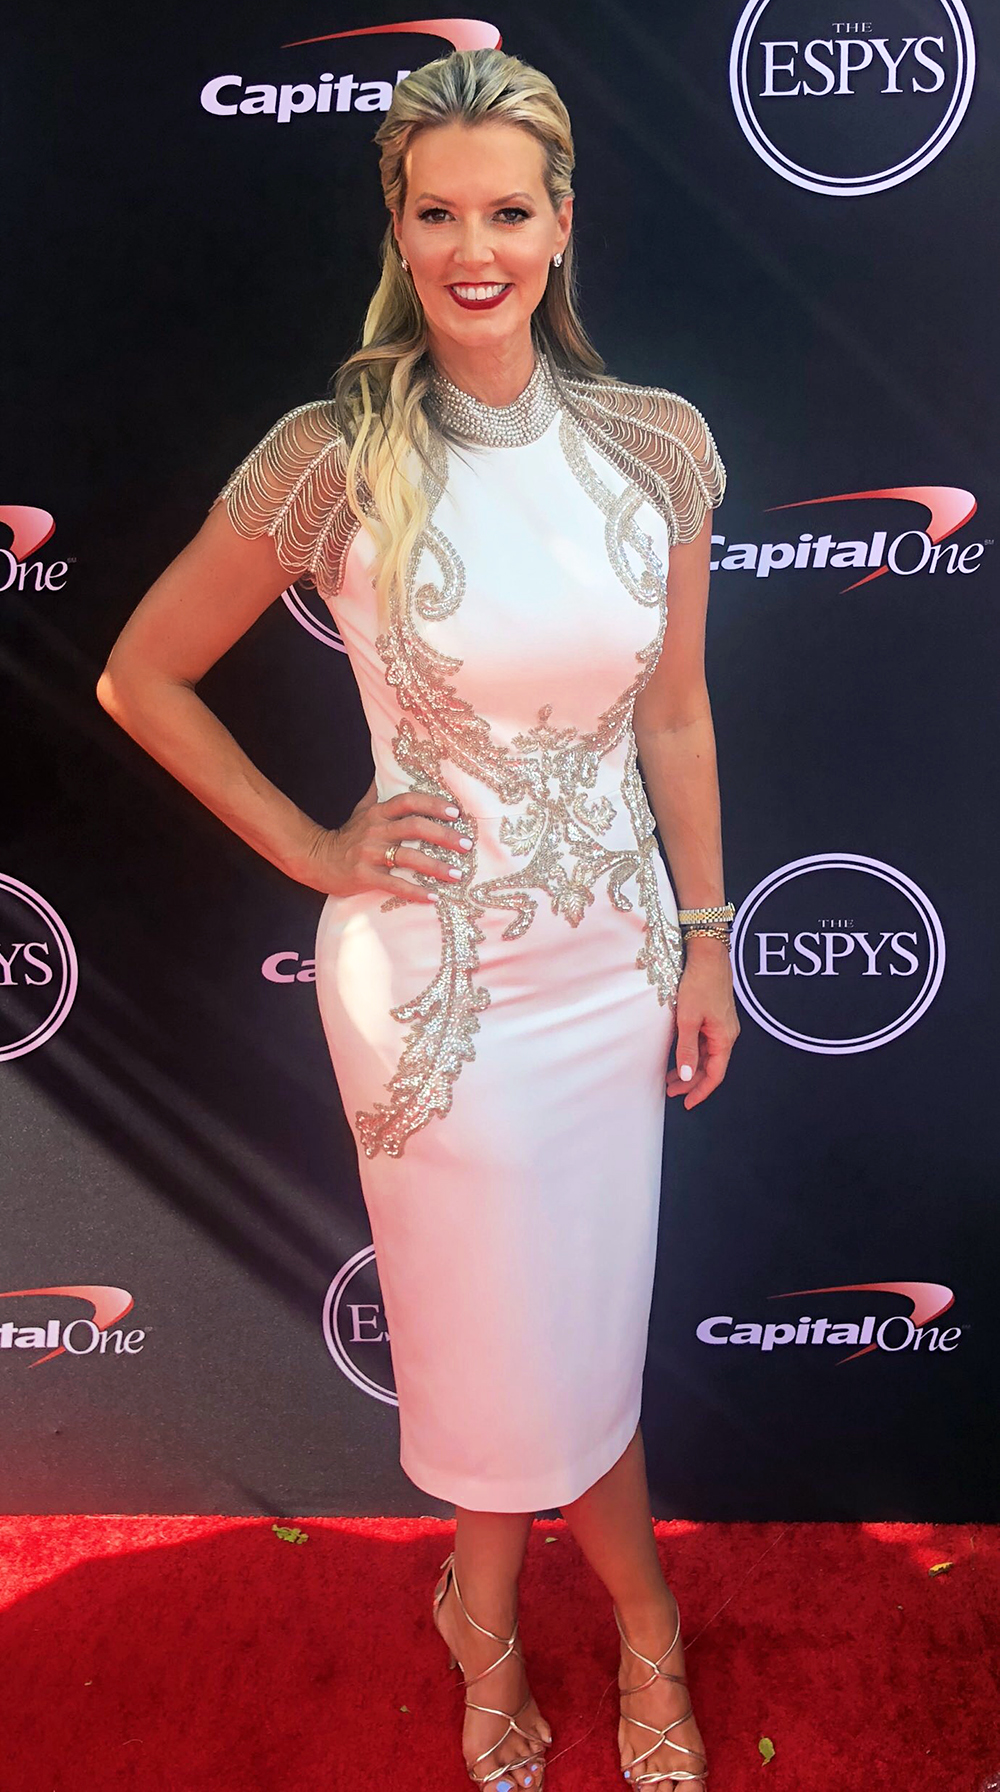 min Espys Beauty Affair red carpet makeup and hair stacy sager.jpg